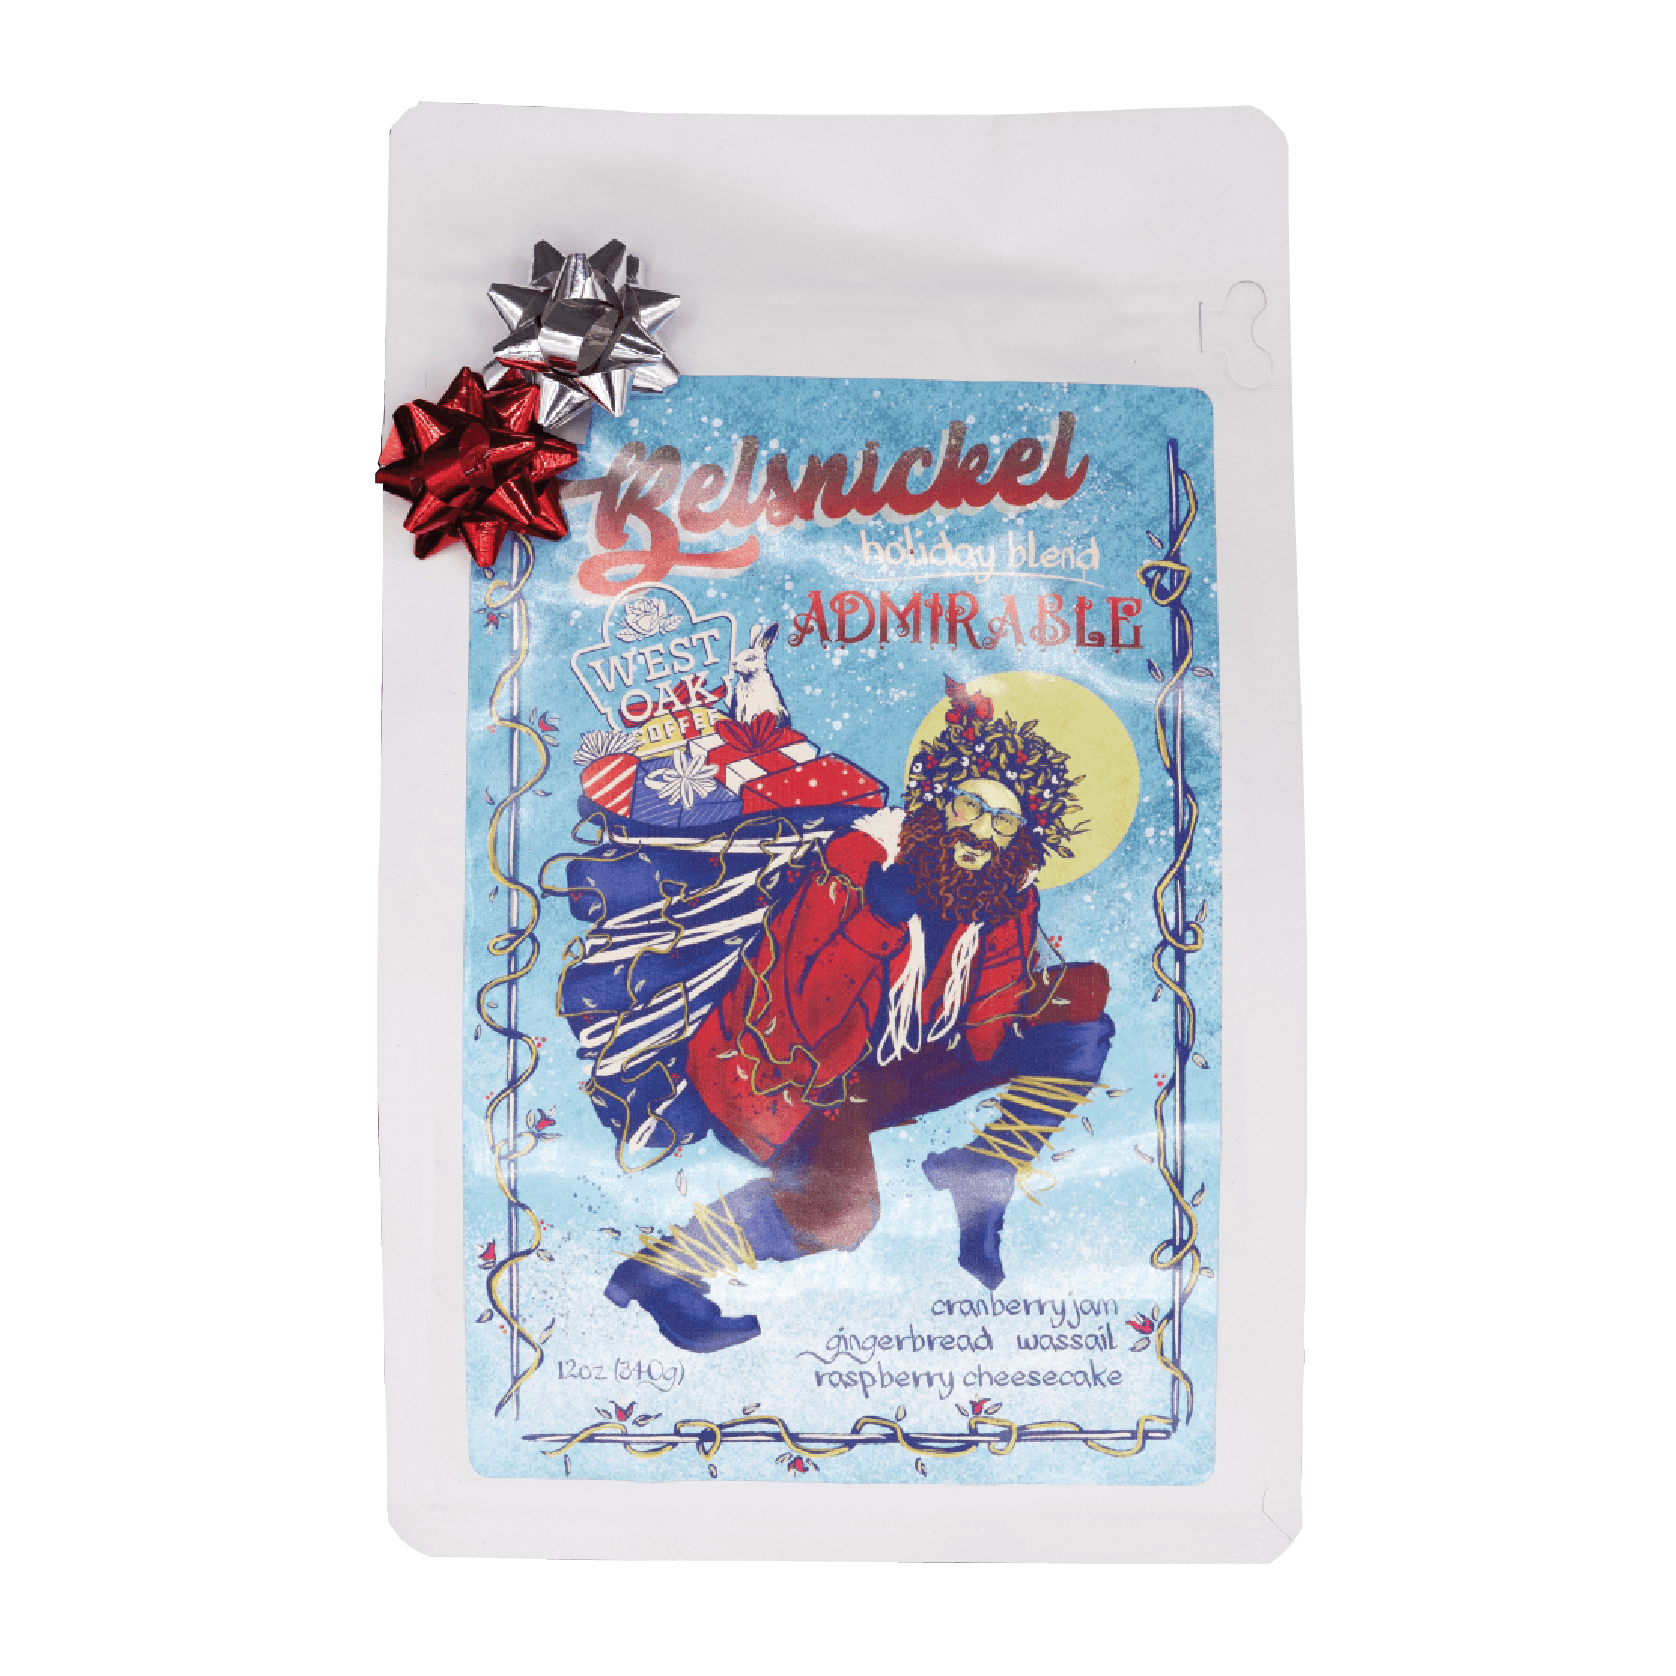 Holiday Blend: Belsnickel Admirable from West Oak Coffee